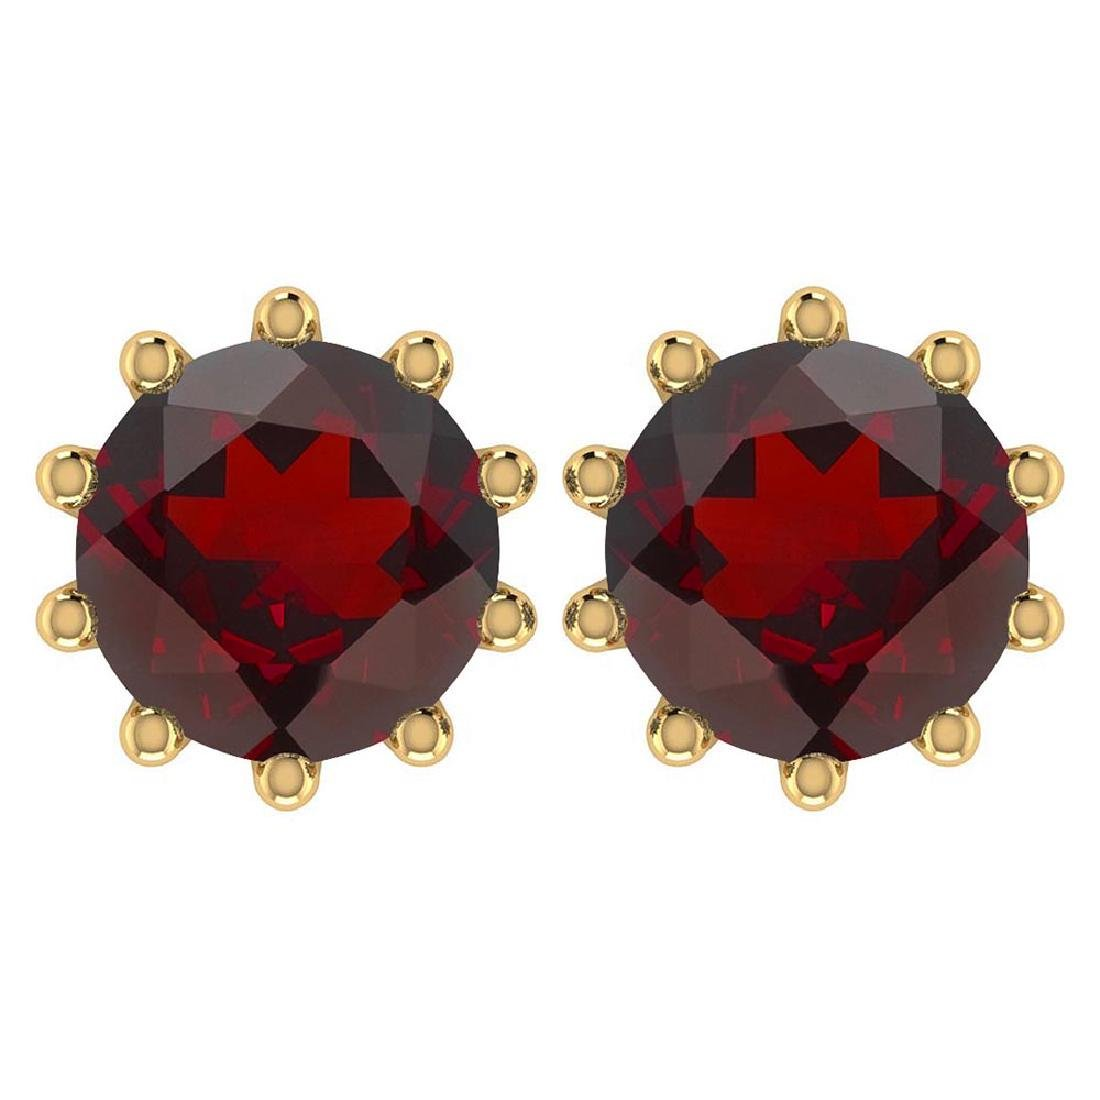 Certitifed 1.60 Ctw Genuine Garnet 14K Yellow Gold Stud